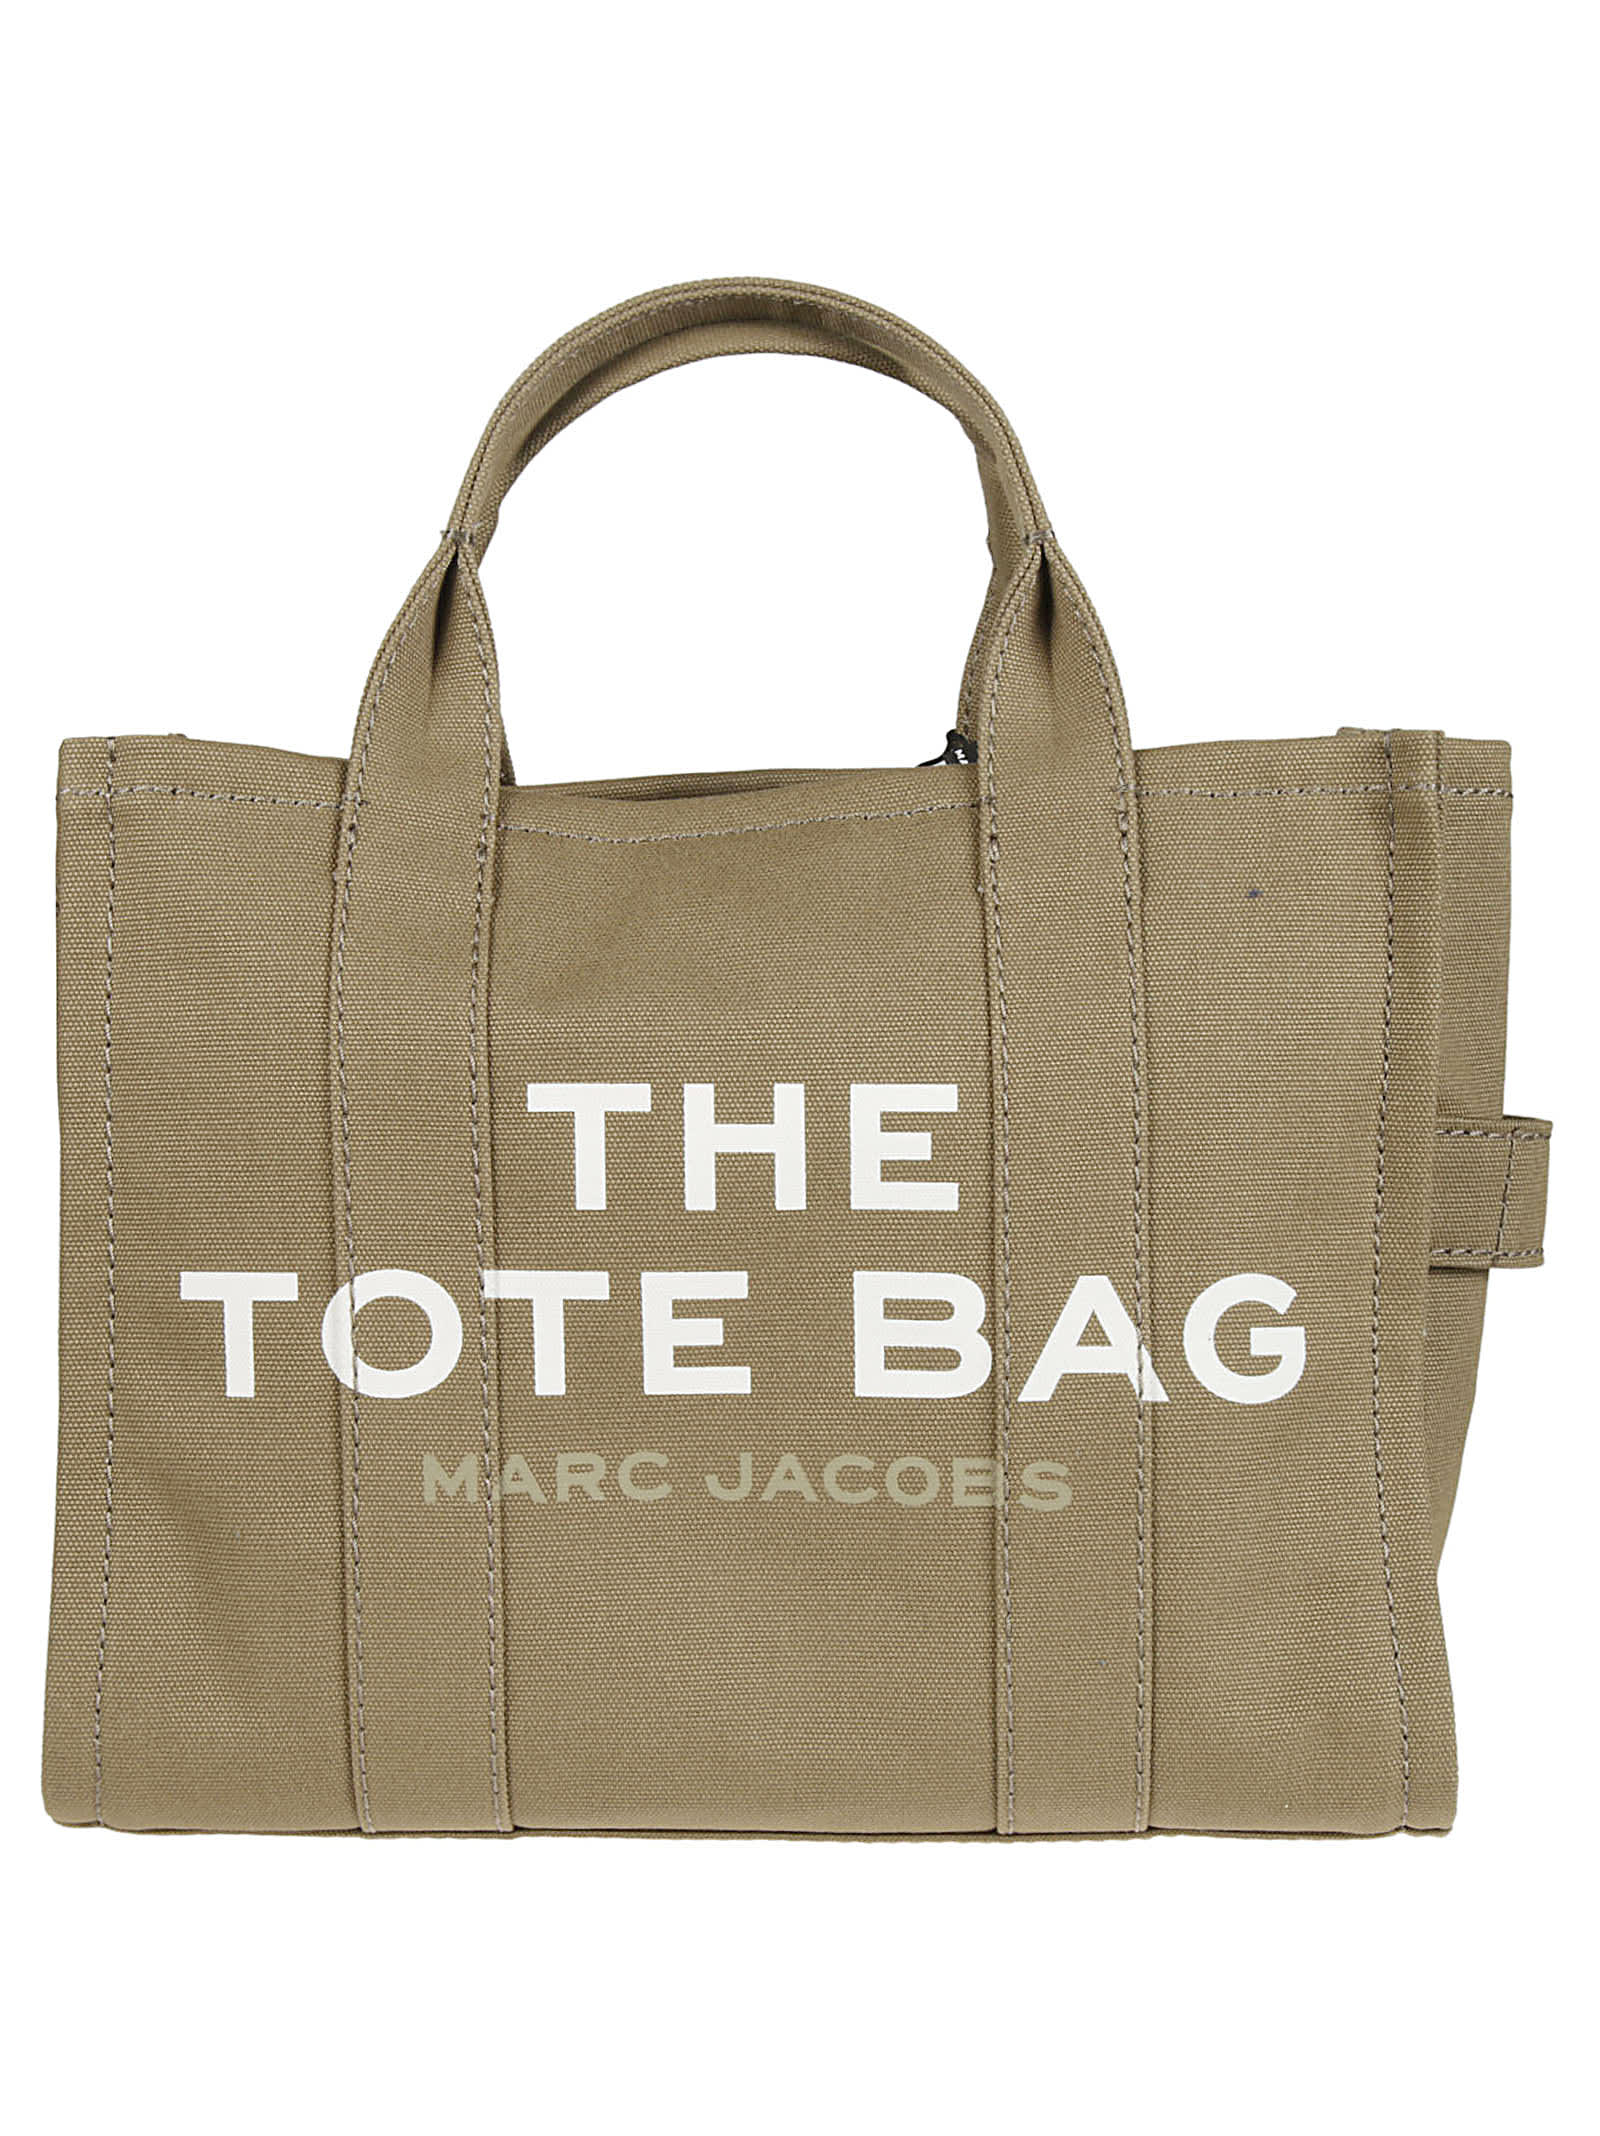 Marc Jacobs The Tote Bag Tote